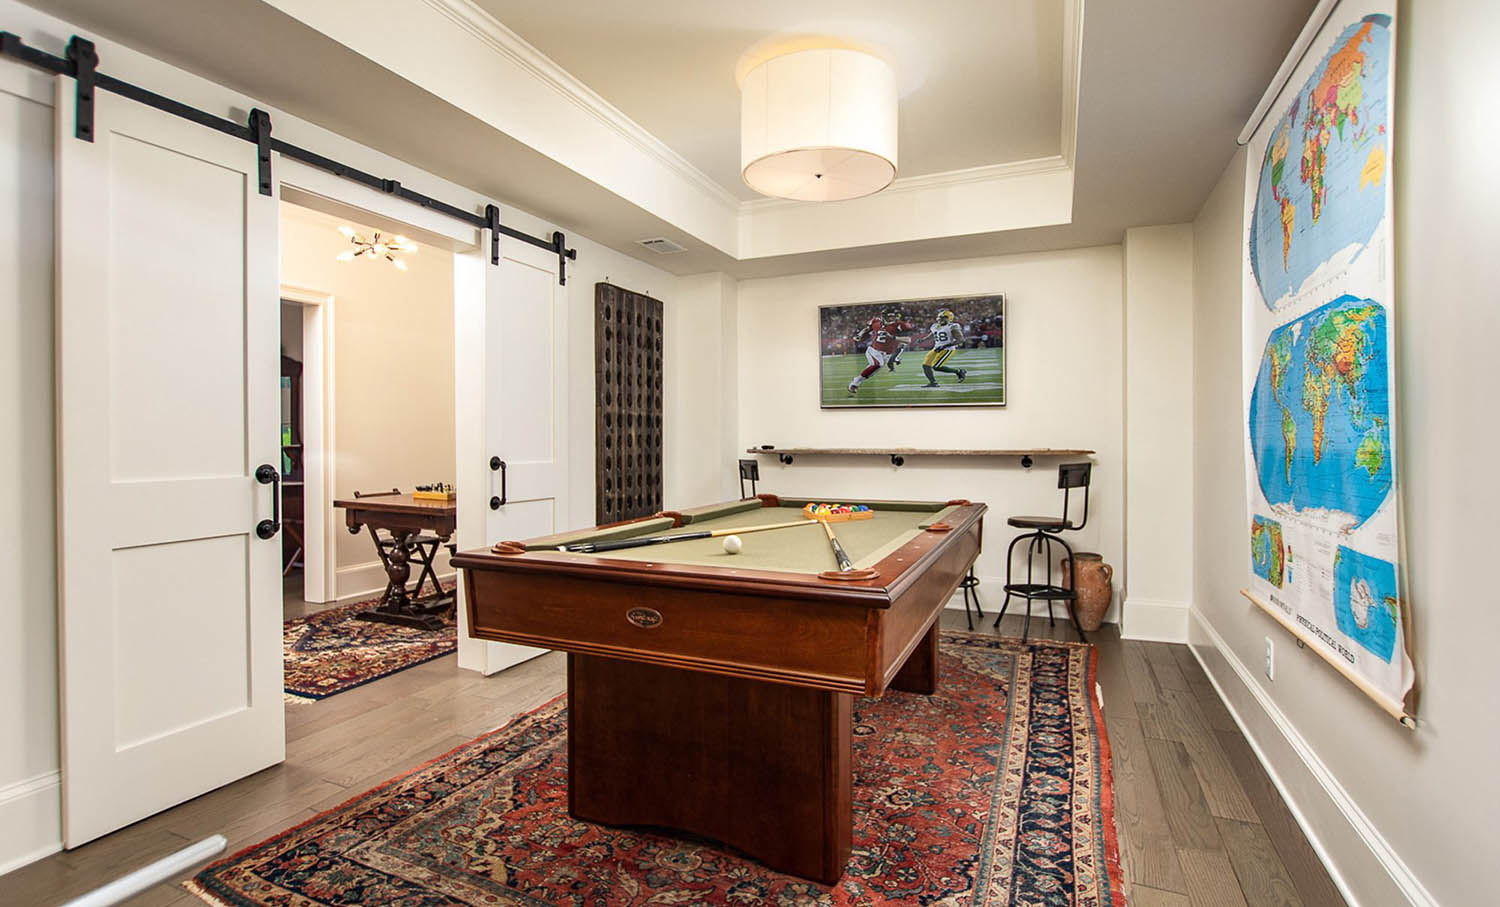 White wooden french barn doors with black handles and hardware. Game room with pool table and medium stained wood floors.